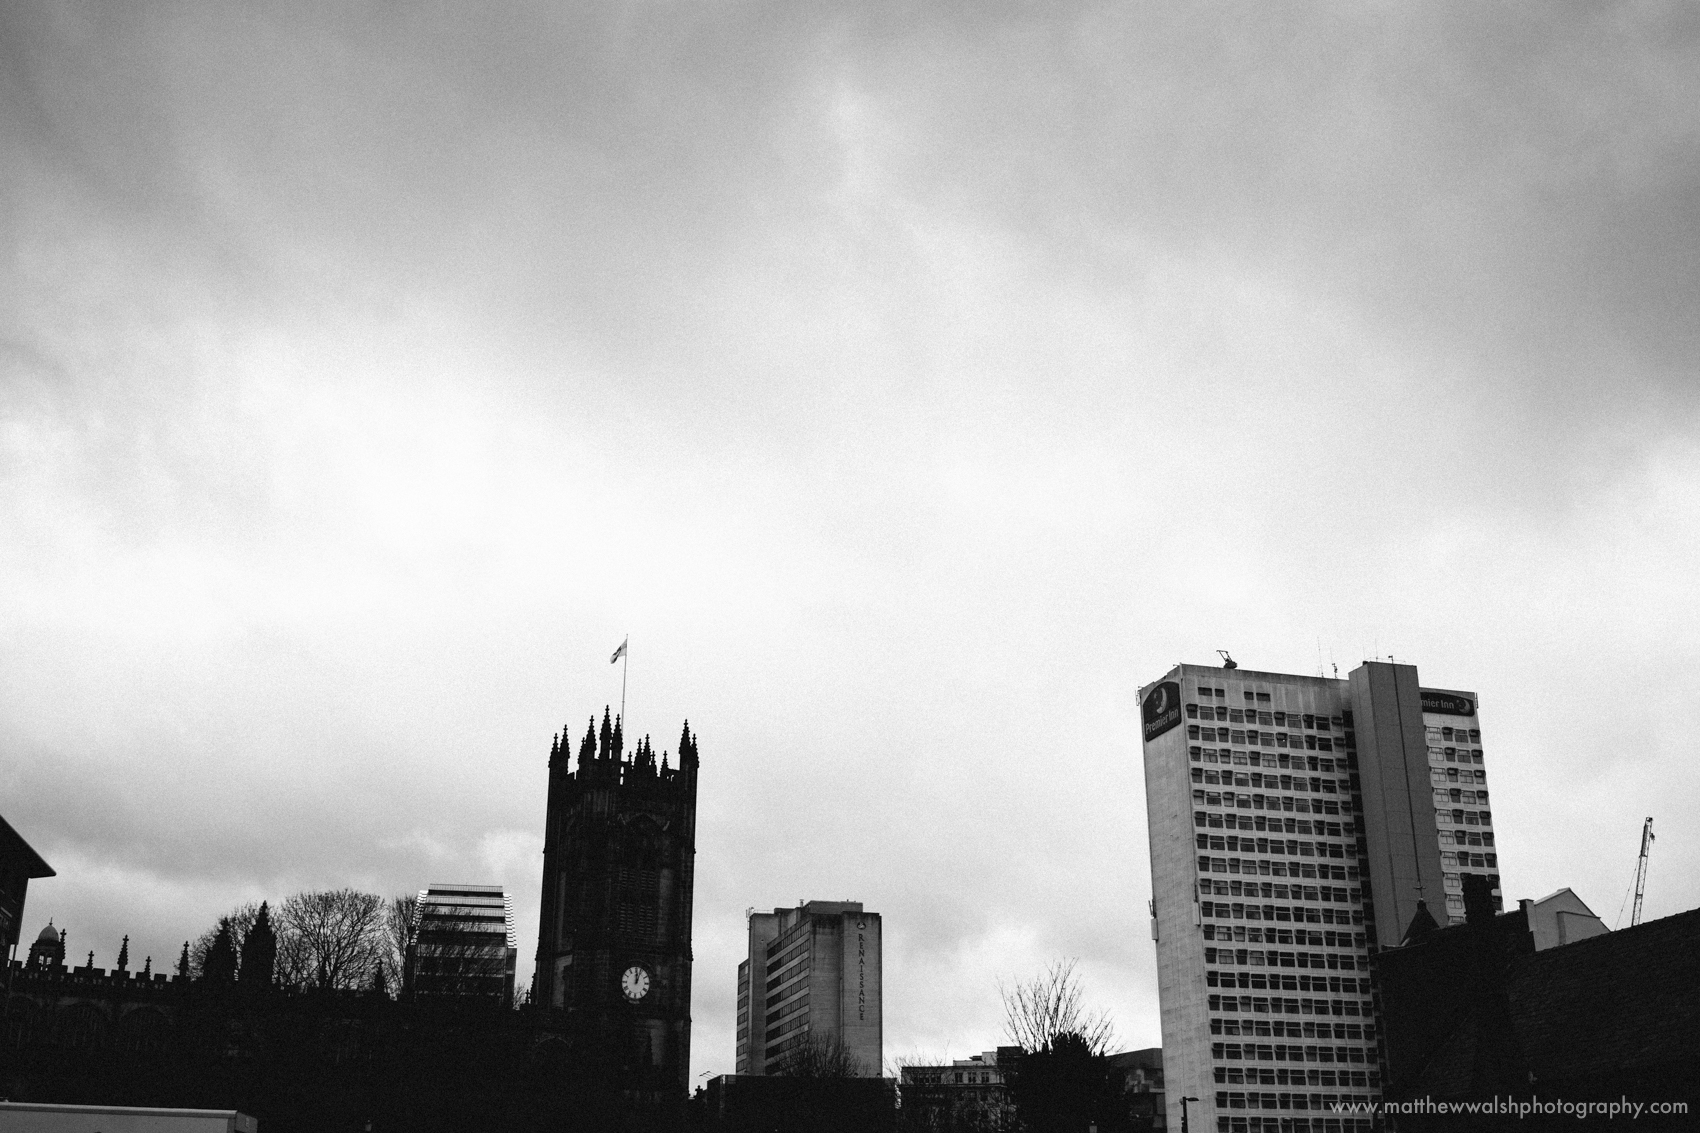 Manchester skyline on a gloomy January day adding context to the story of the day